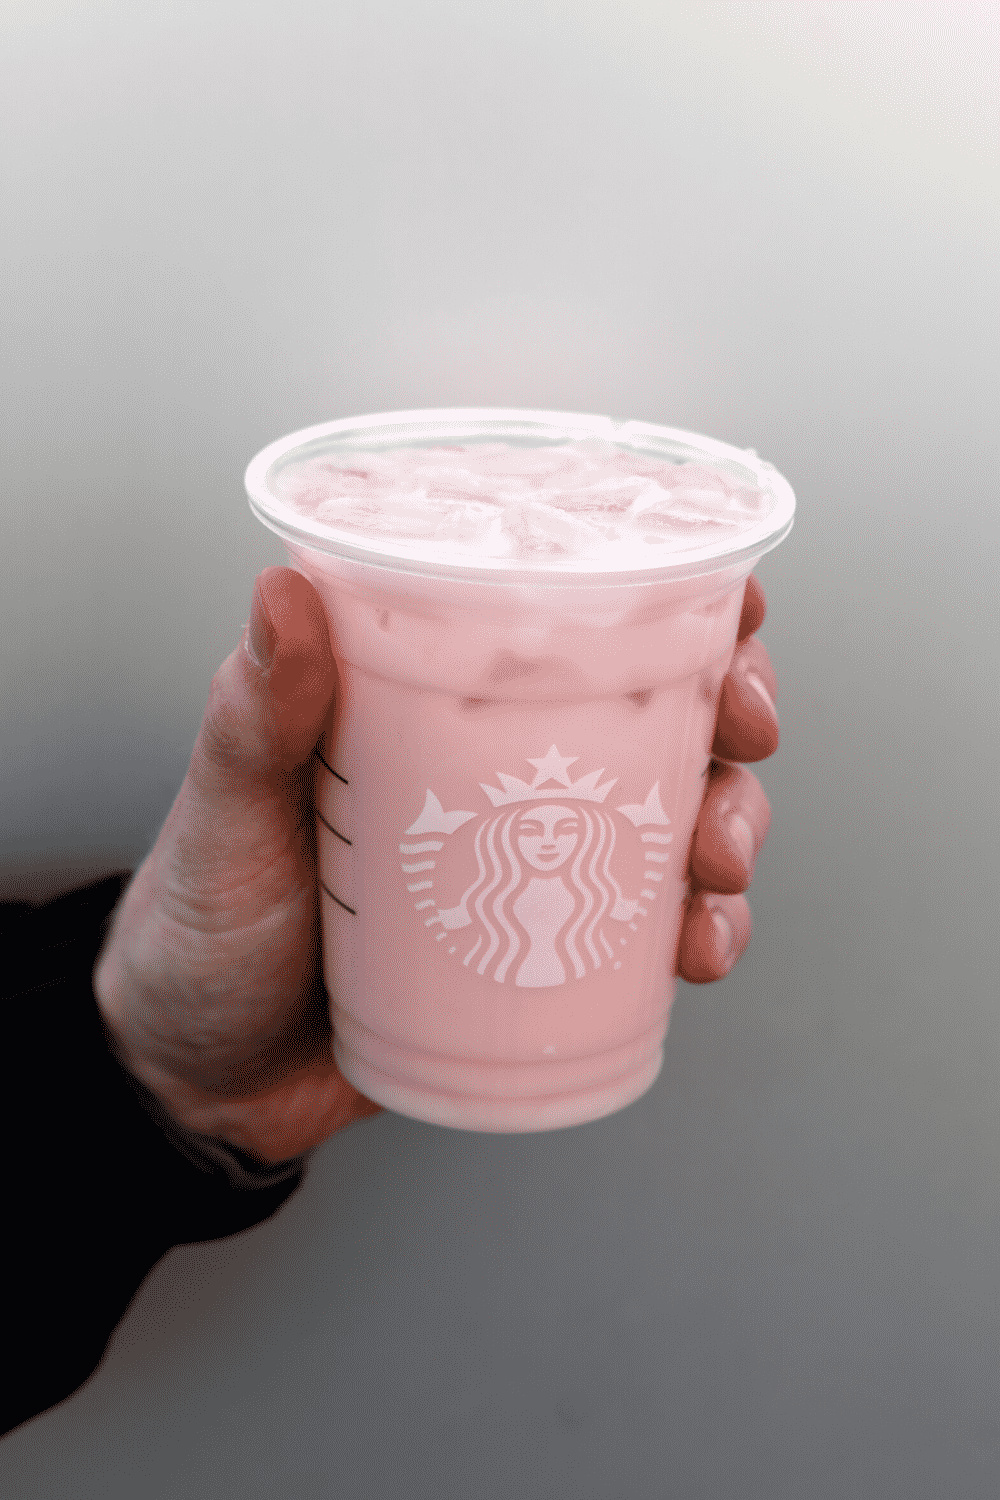 A hand holding Starbucks vegan iced guava passionfruit.